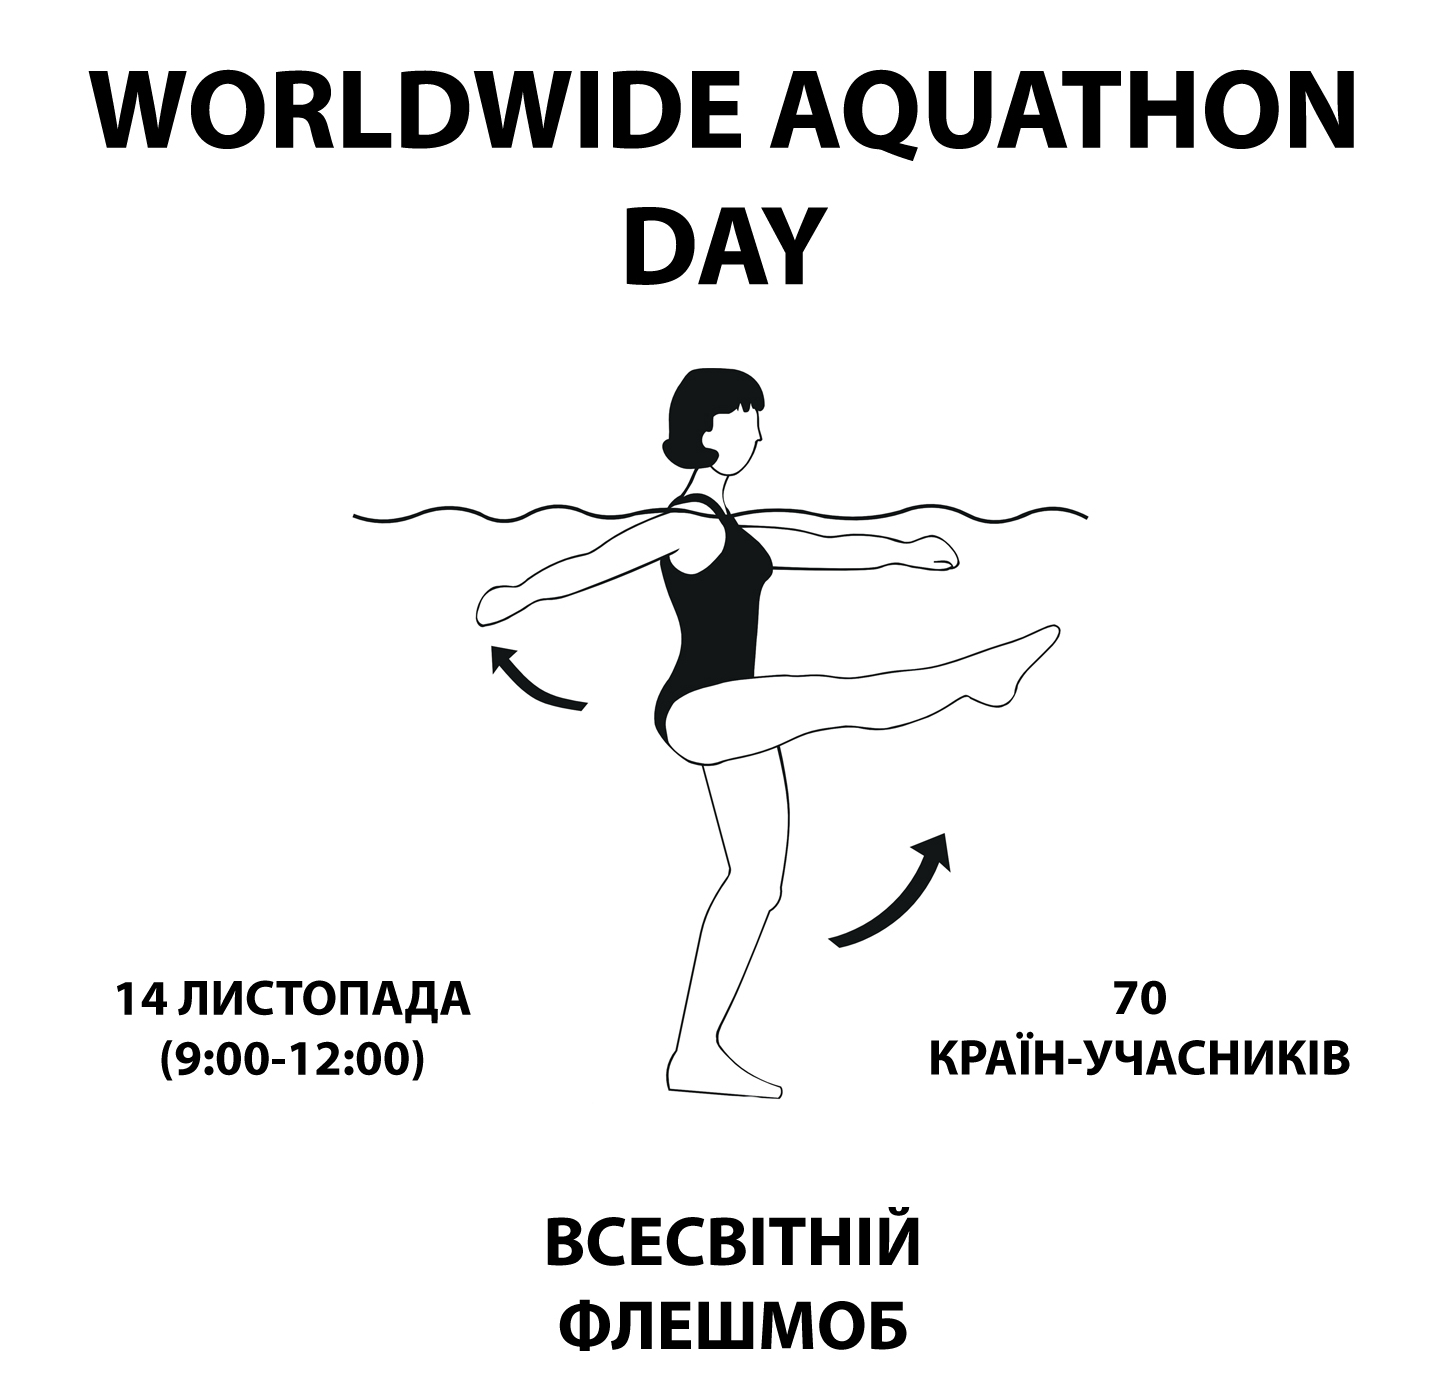 Worldwide Aquathon Day - 14/11/2015